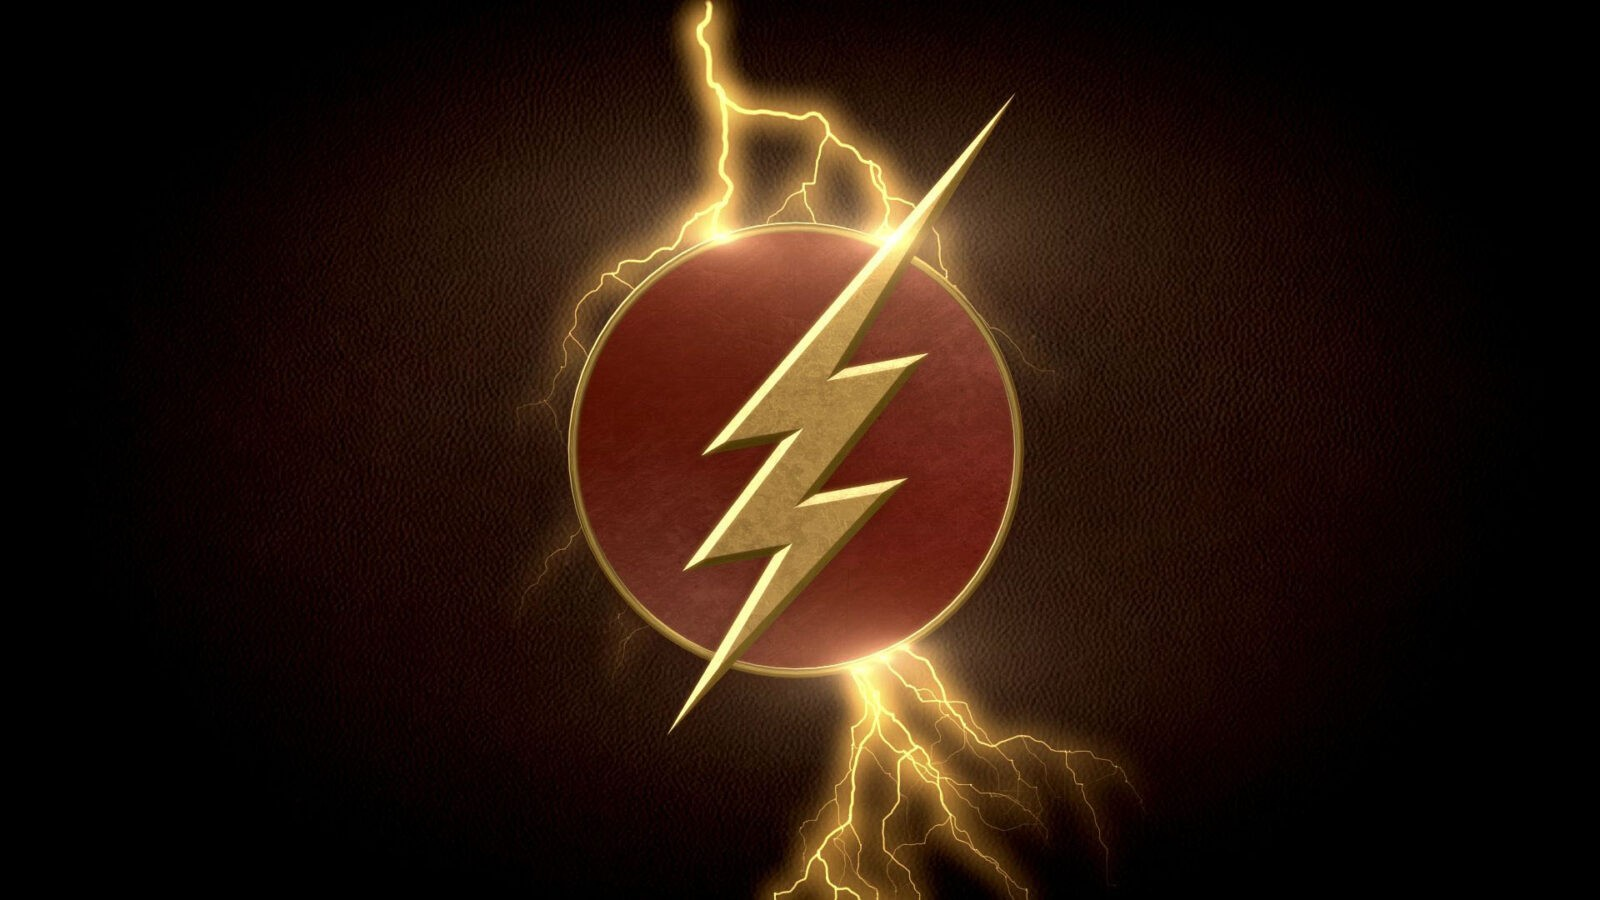 zoom and flash lego wallpaper - photo #29